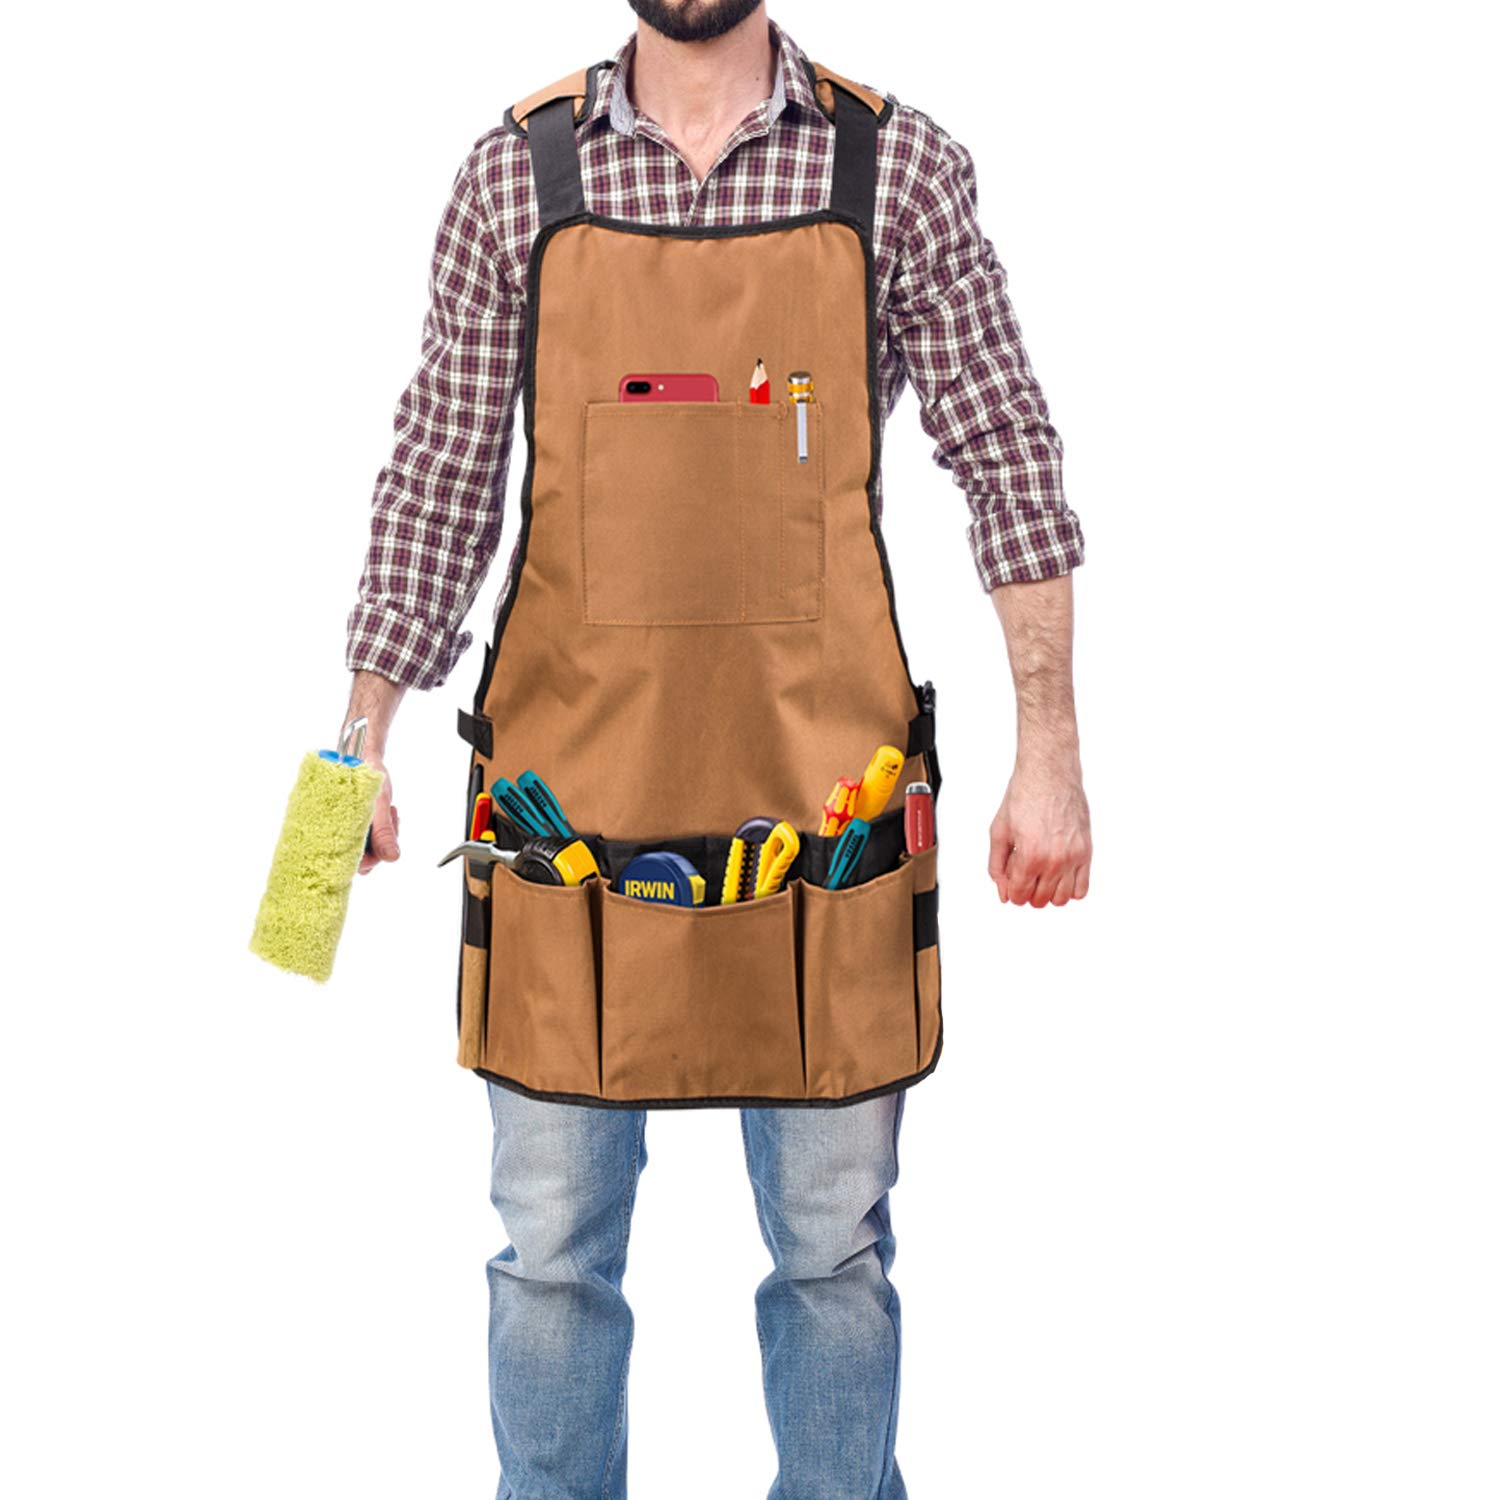 Canvas Work Apron, Heavy Duty Waxed Canvas Shop Apron with16 Tool Pockets-Easy Adjustable-Adjustable Shoulder and Waist Padded Straps-Waterproof and Protective Tool Apron (brown)